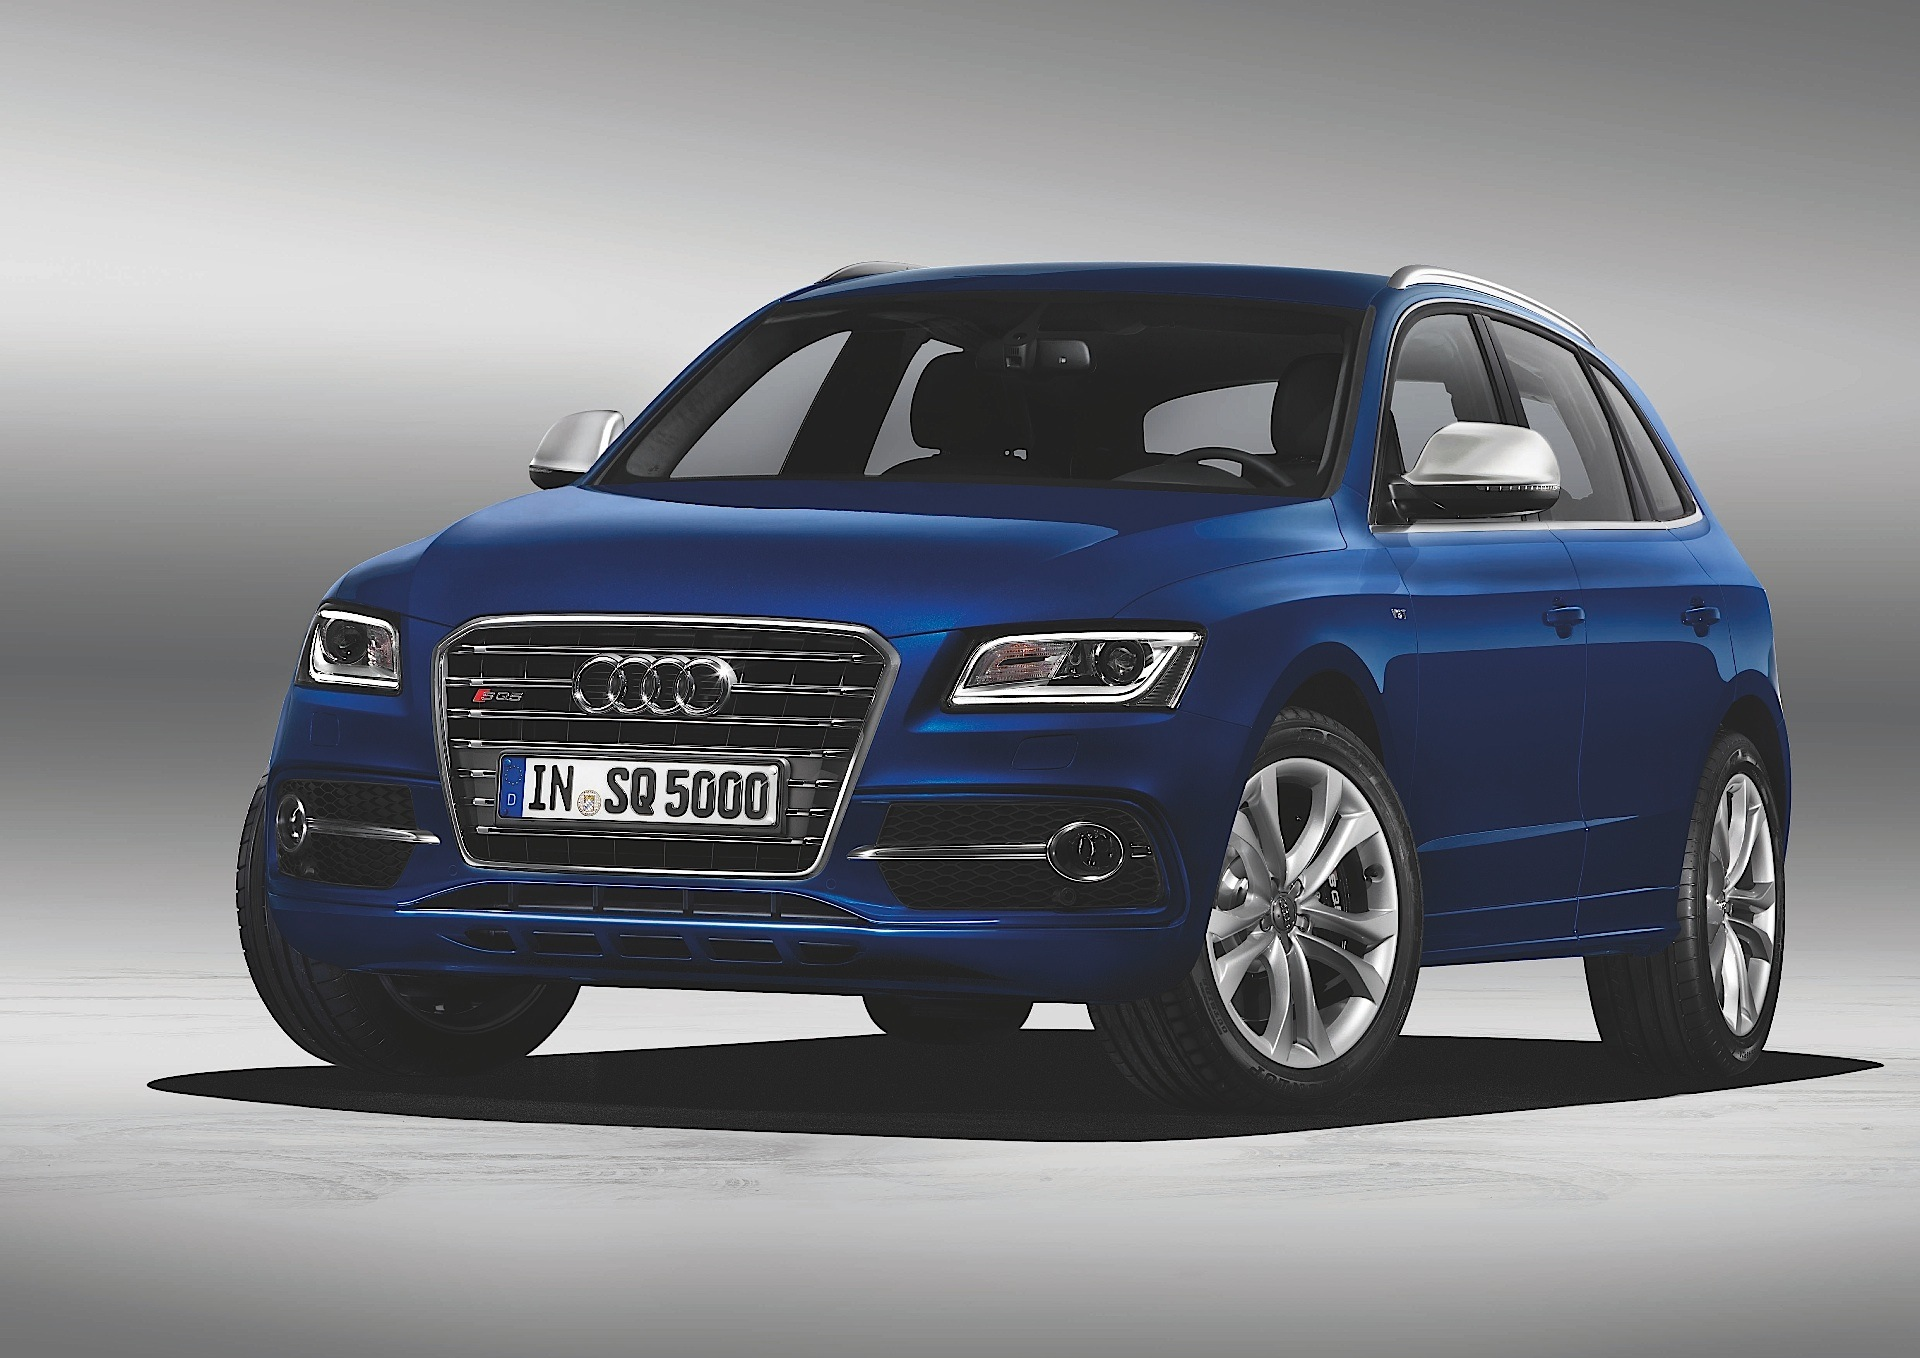 Audi Sq5 Specs Photos 2013 2014 2015 2016 2017 Autoevolution